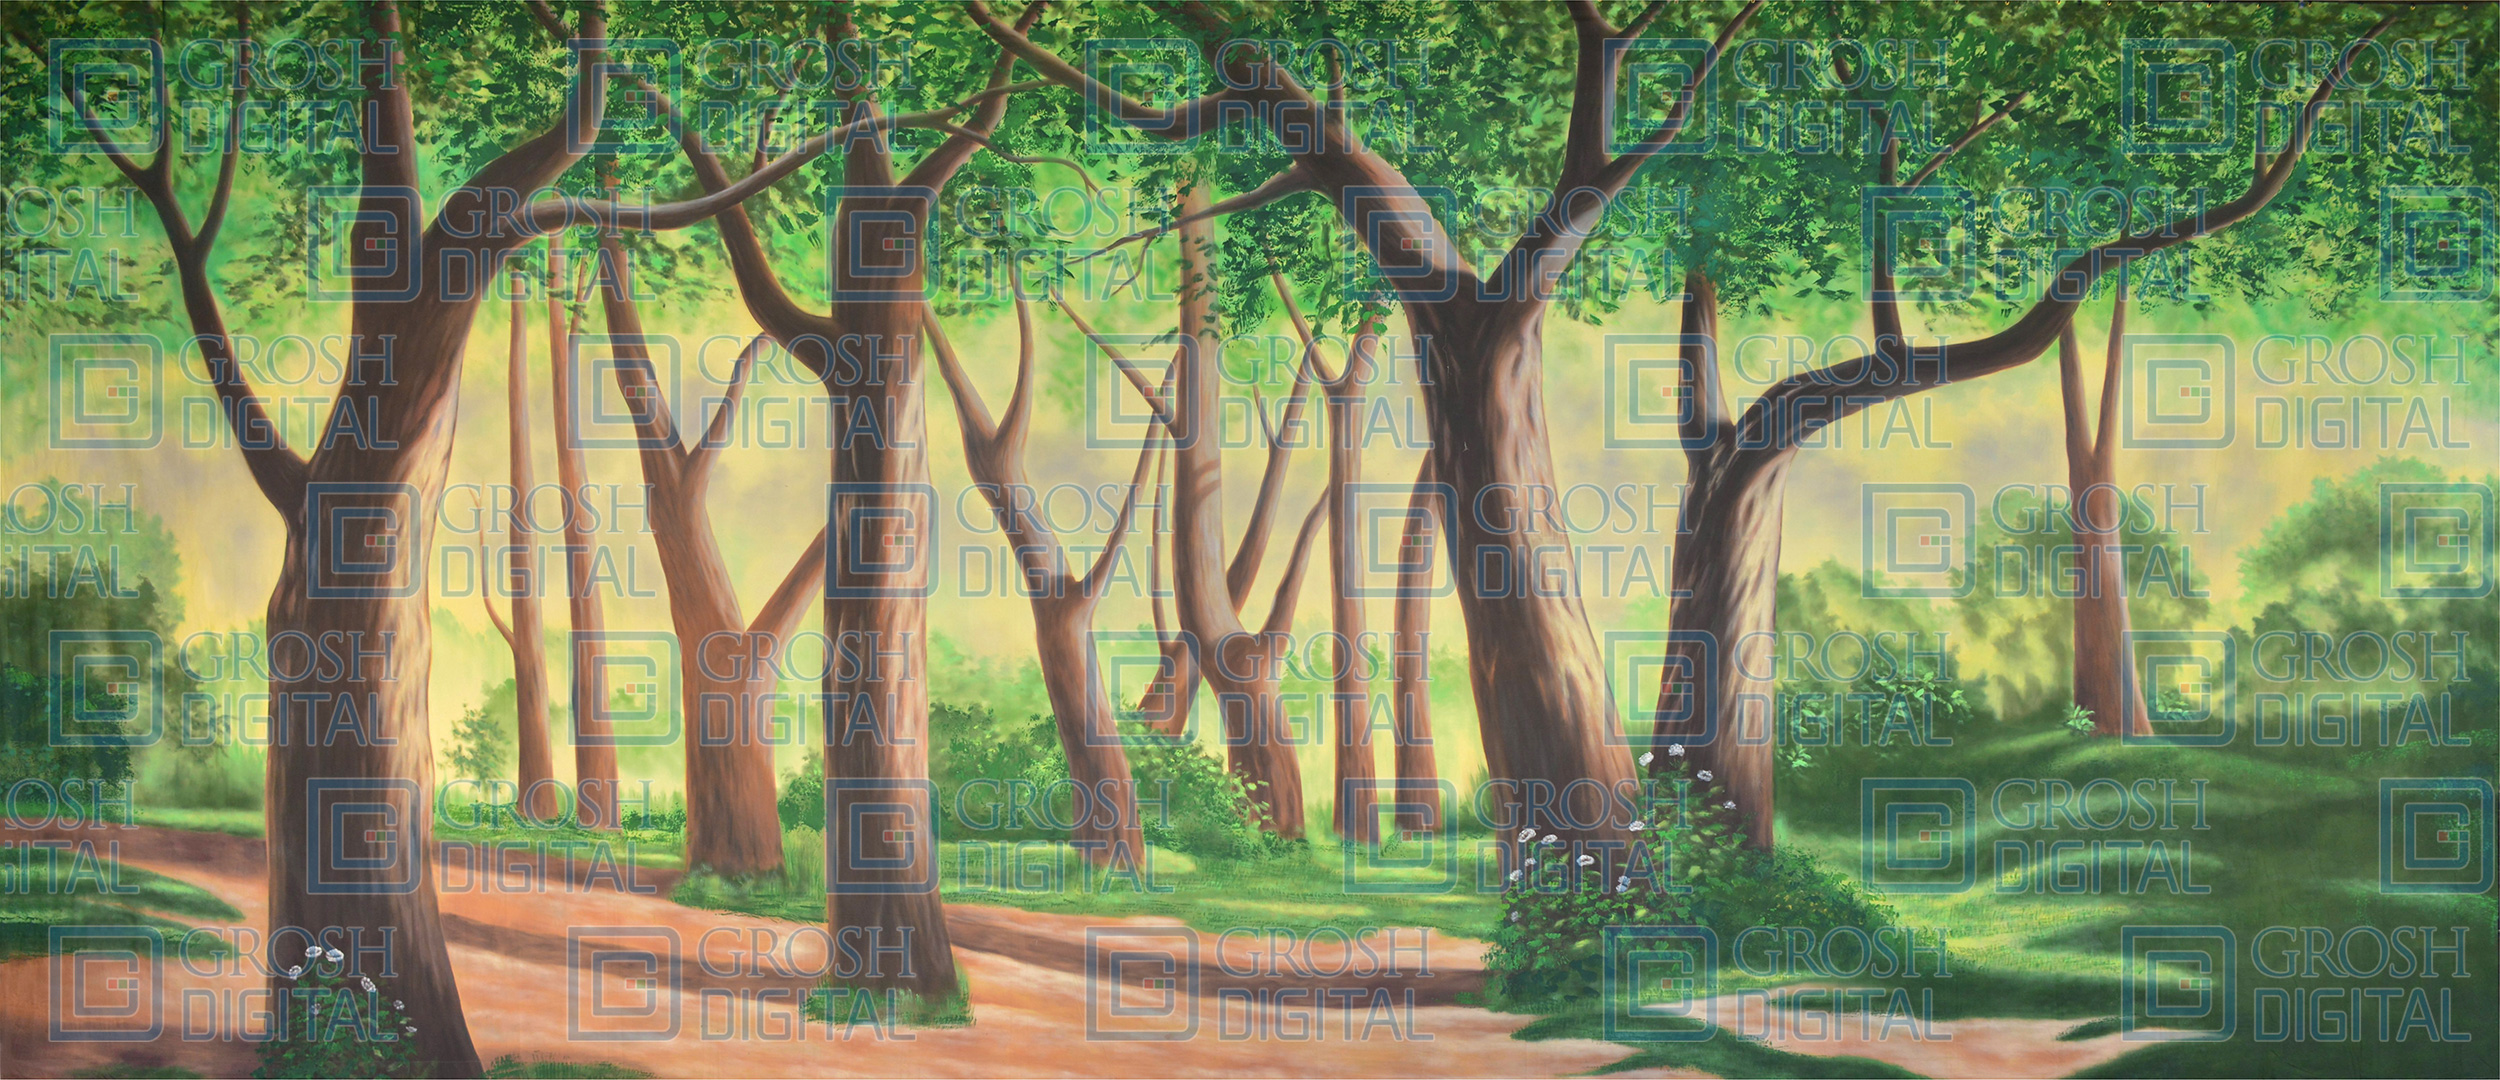 Forest 1 Projected Backdrop for Addams Family, Alice in Wonderland, Beauty and the Beast, Cinderella, Forest, Into the Woods, Lion King, Madagascar, Pajama Game, Peter Pan, Shrek, Sleeping Beauty, Wizard of Oz